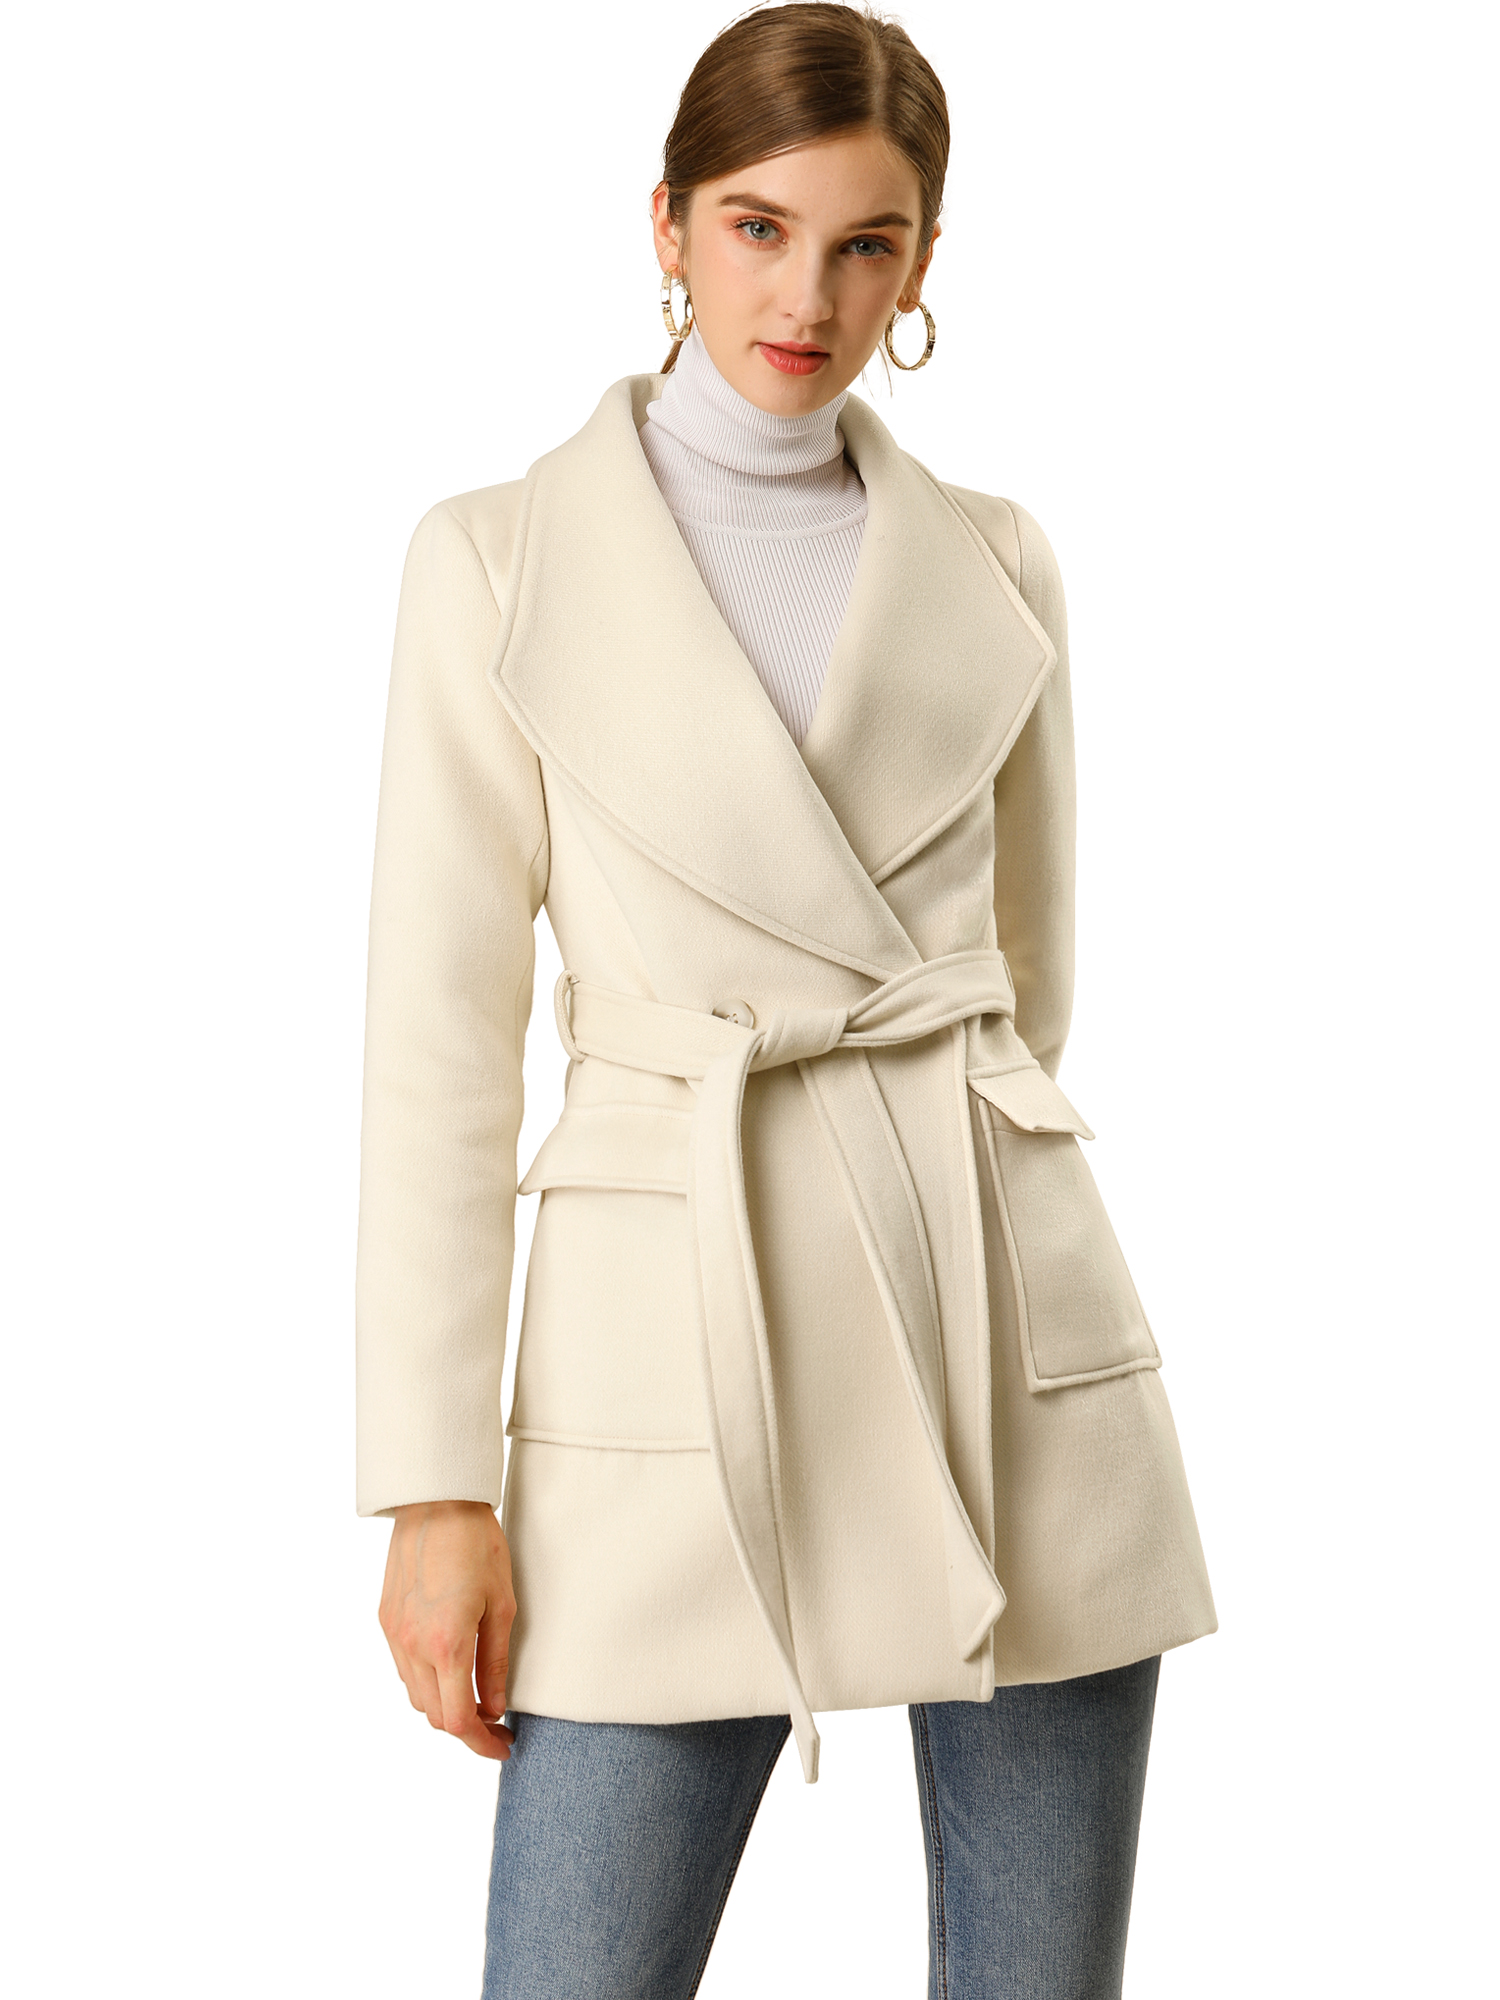 Allegra K Women's Shawl Collar Lapel Belted Coat with Pockets Apricot XS